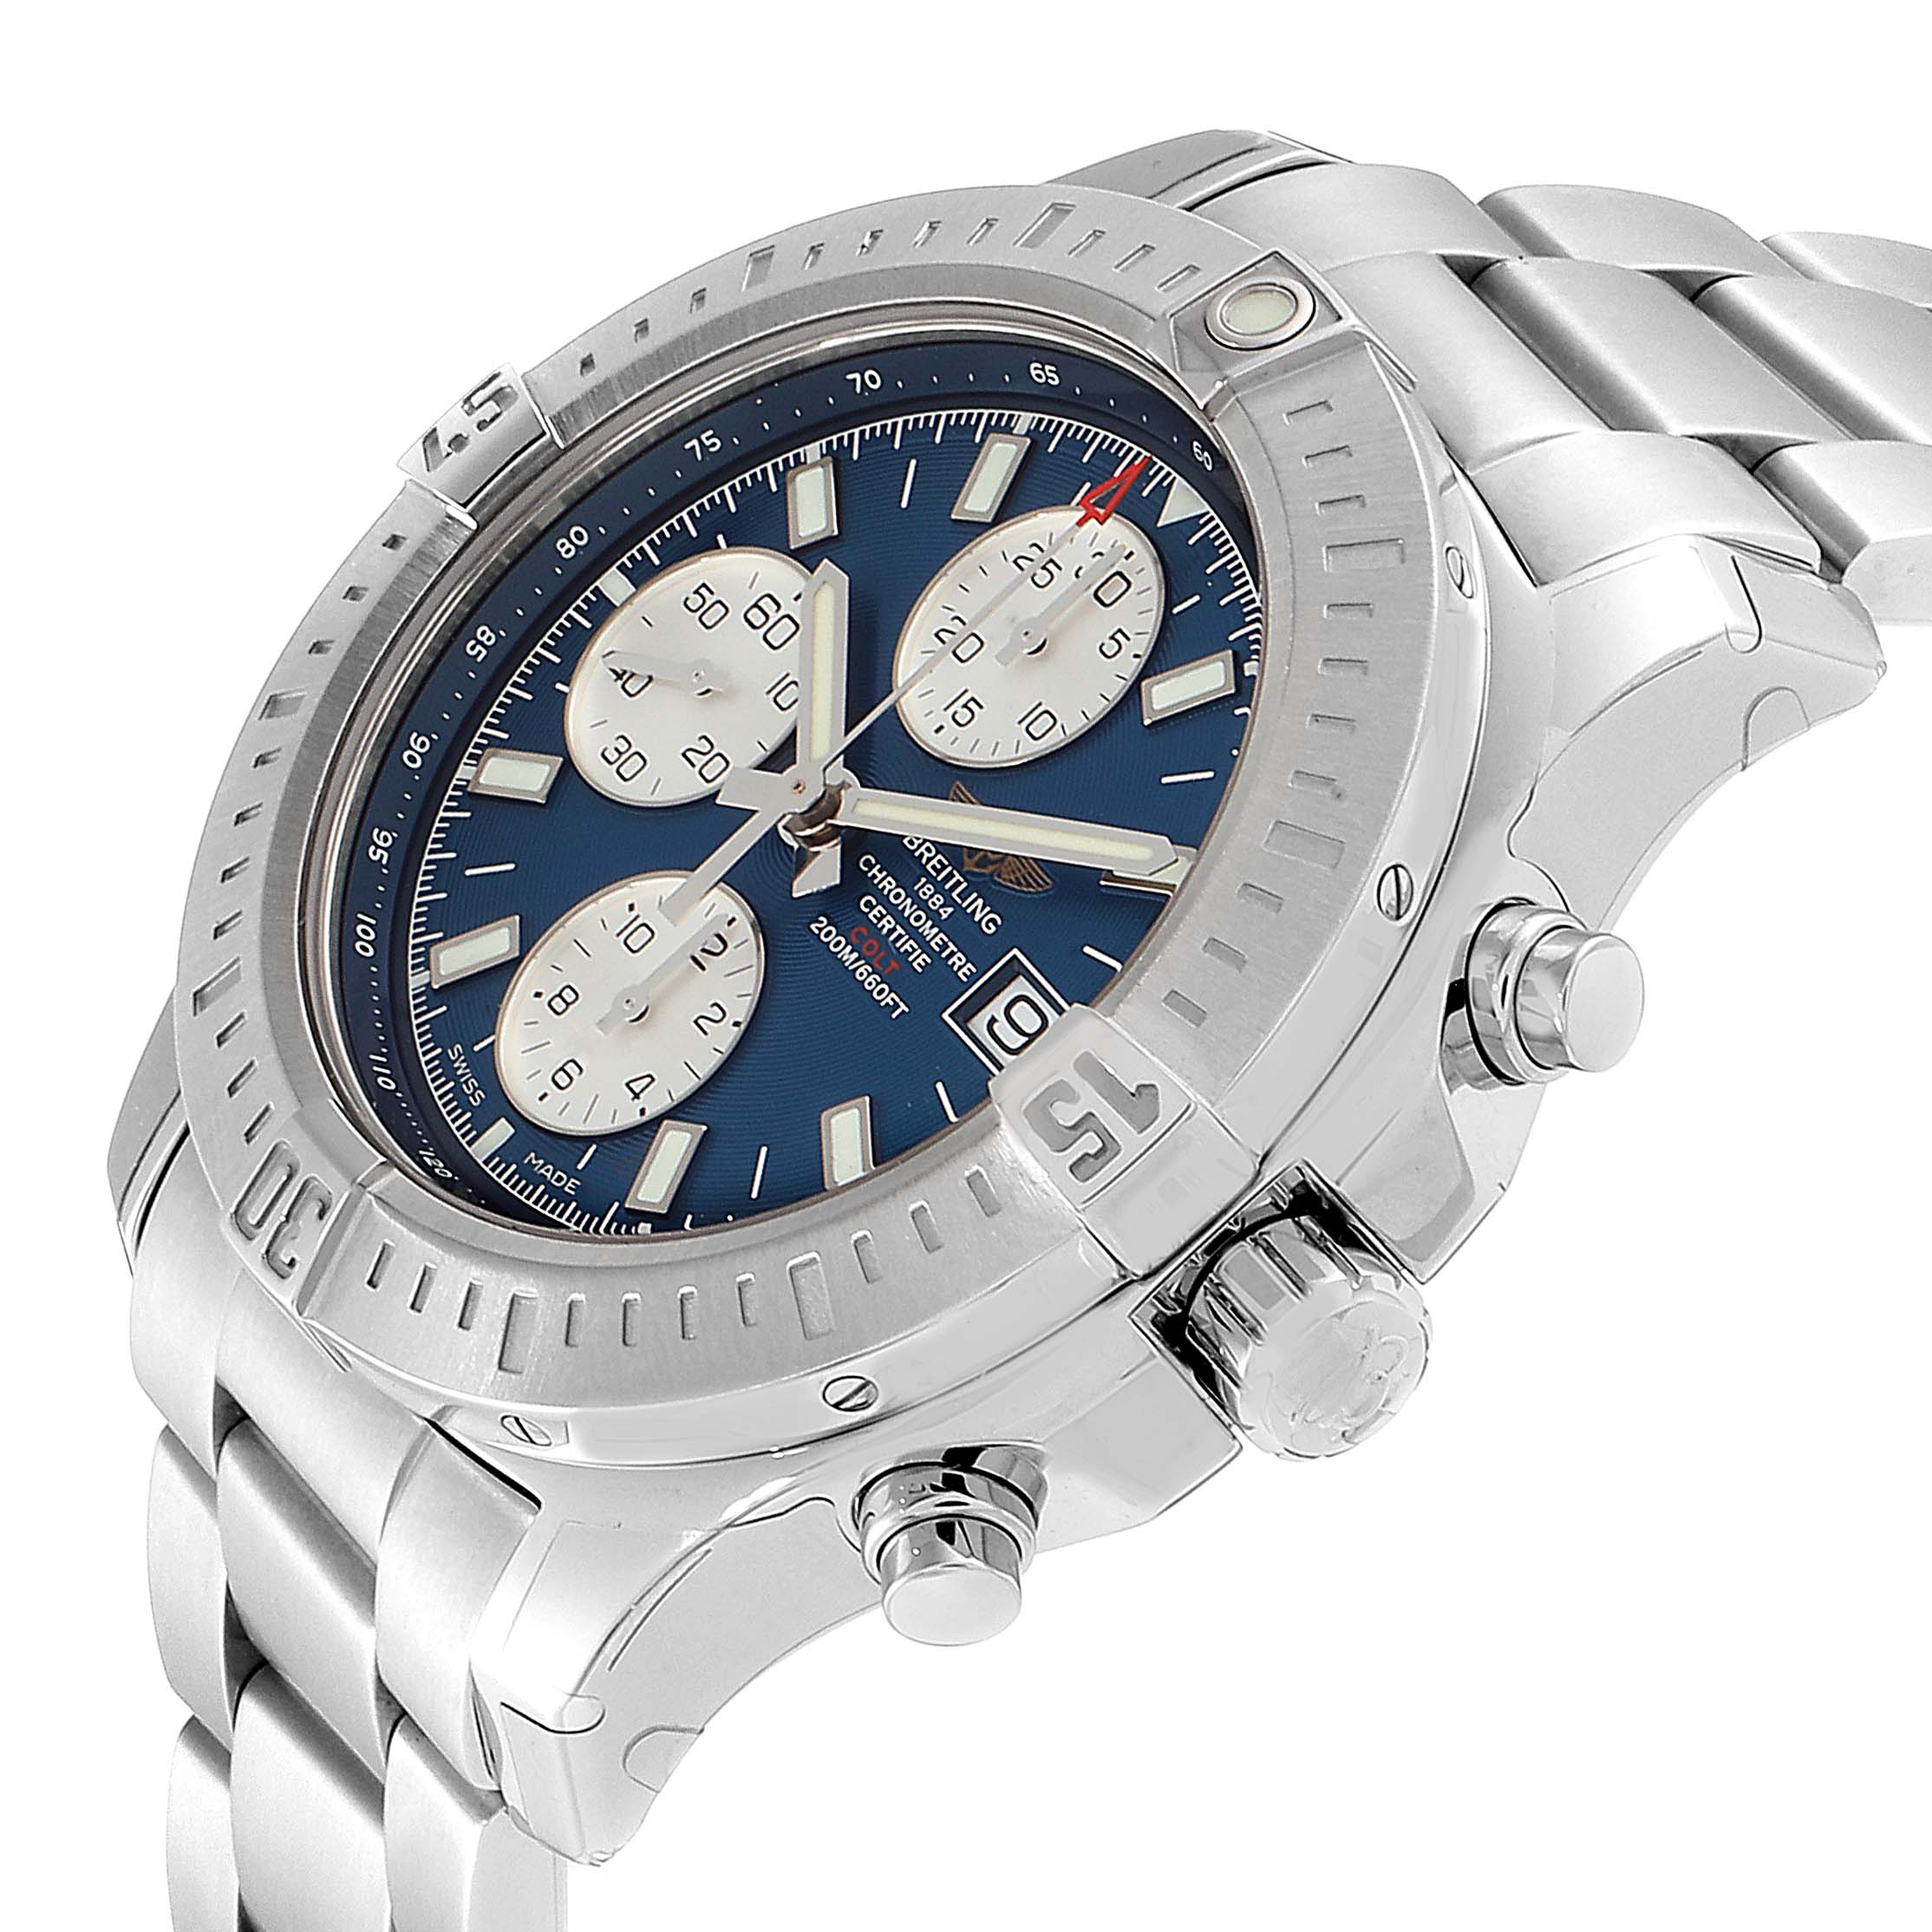 Breitling Colt Automatic Chronograph Blue Dial Watch A13388 Unworn SwissWatchExpo